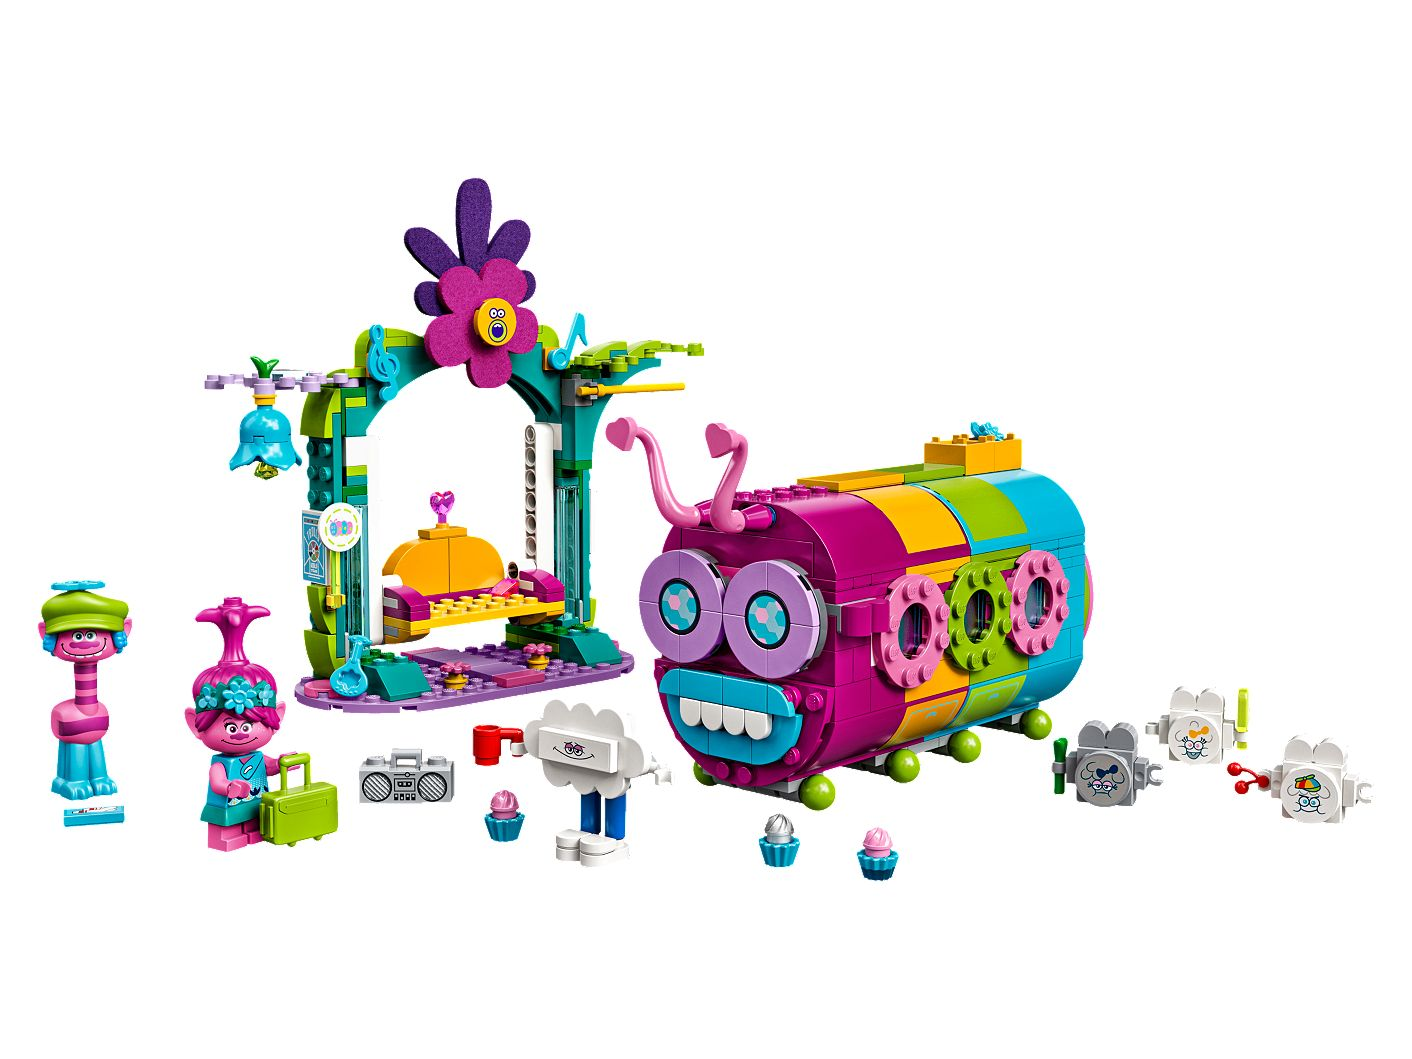 Rainbow Caterbus 41256 Trolls World Tour Buy Online At The